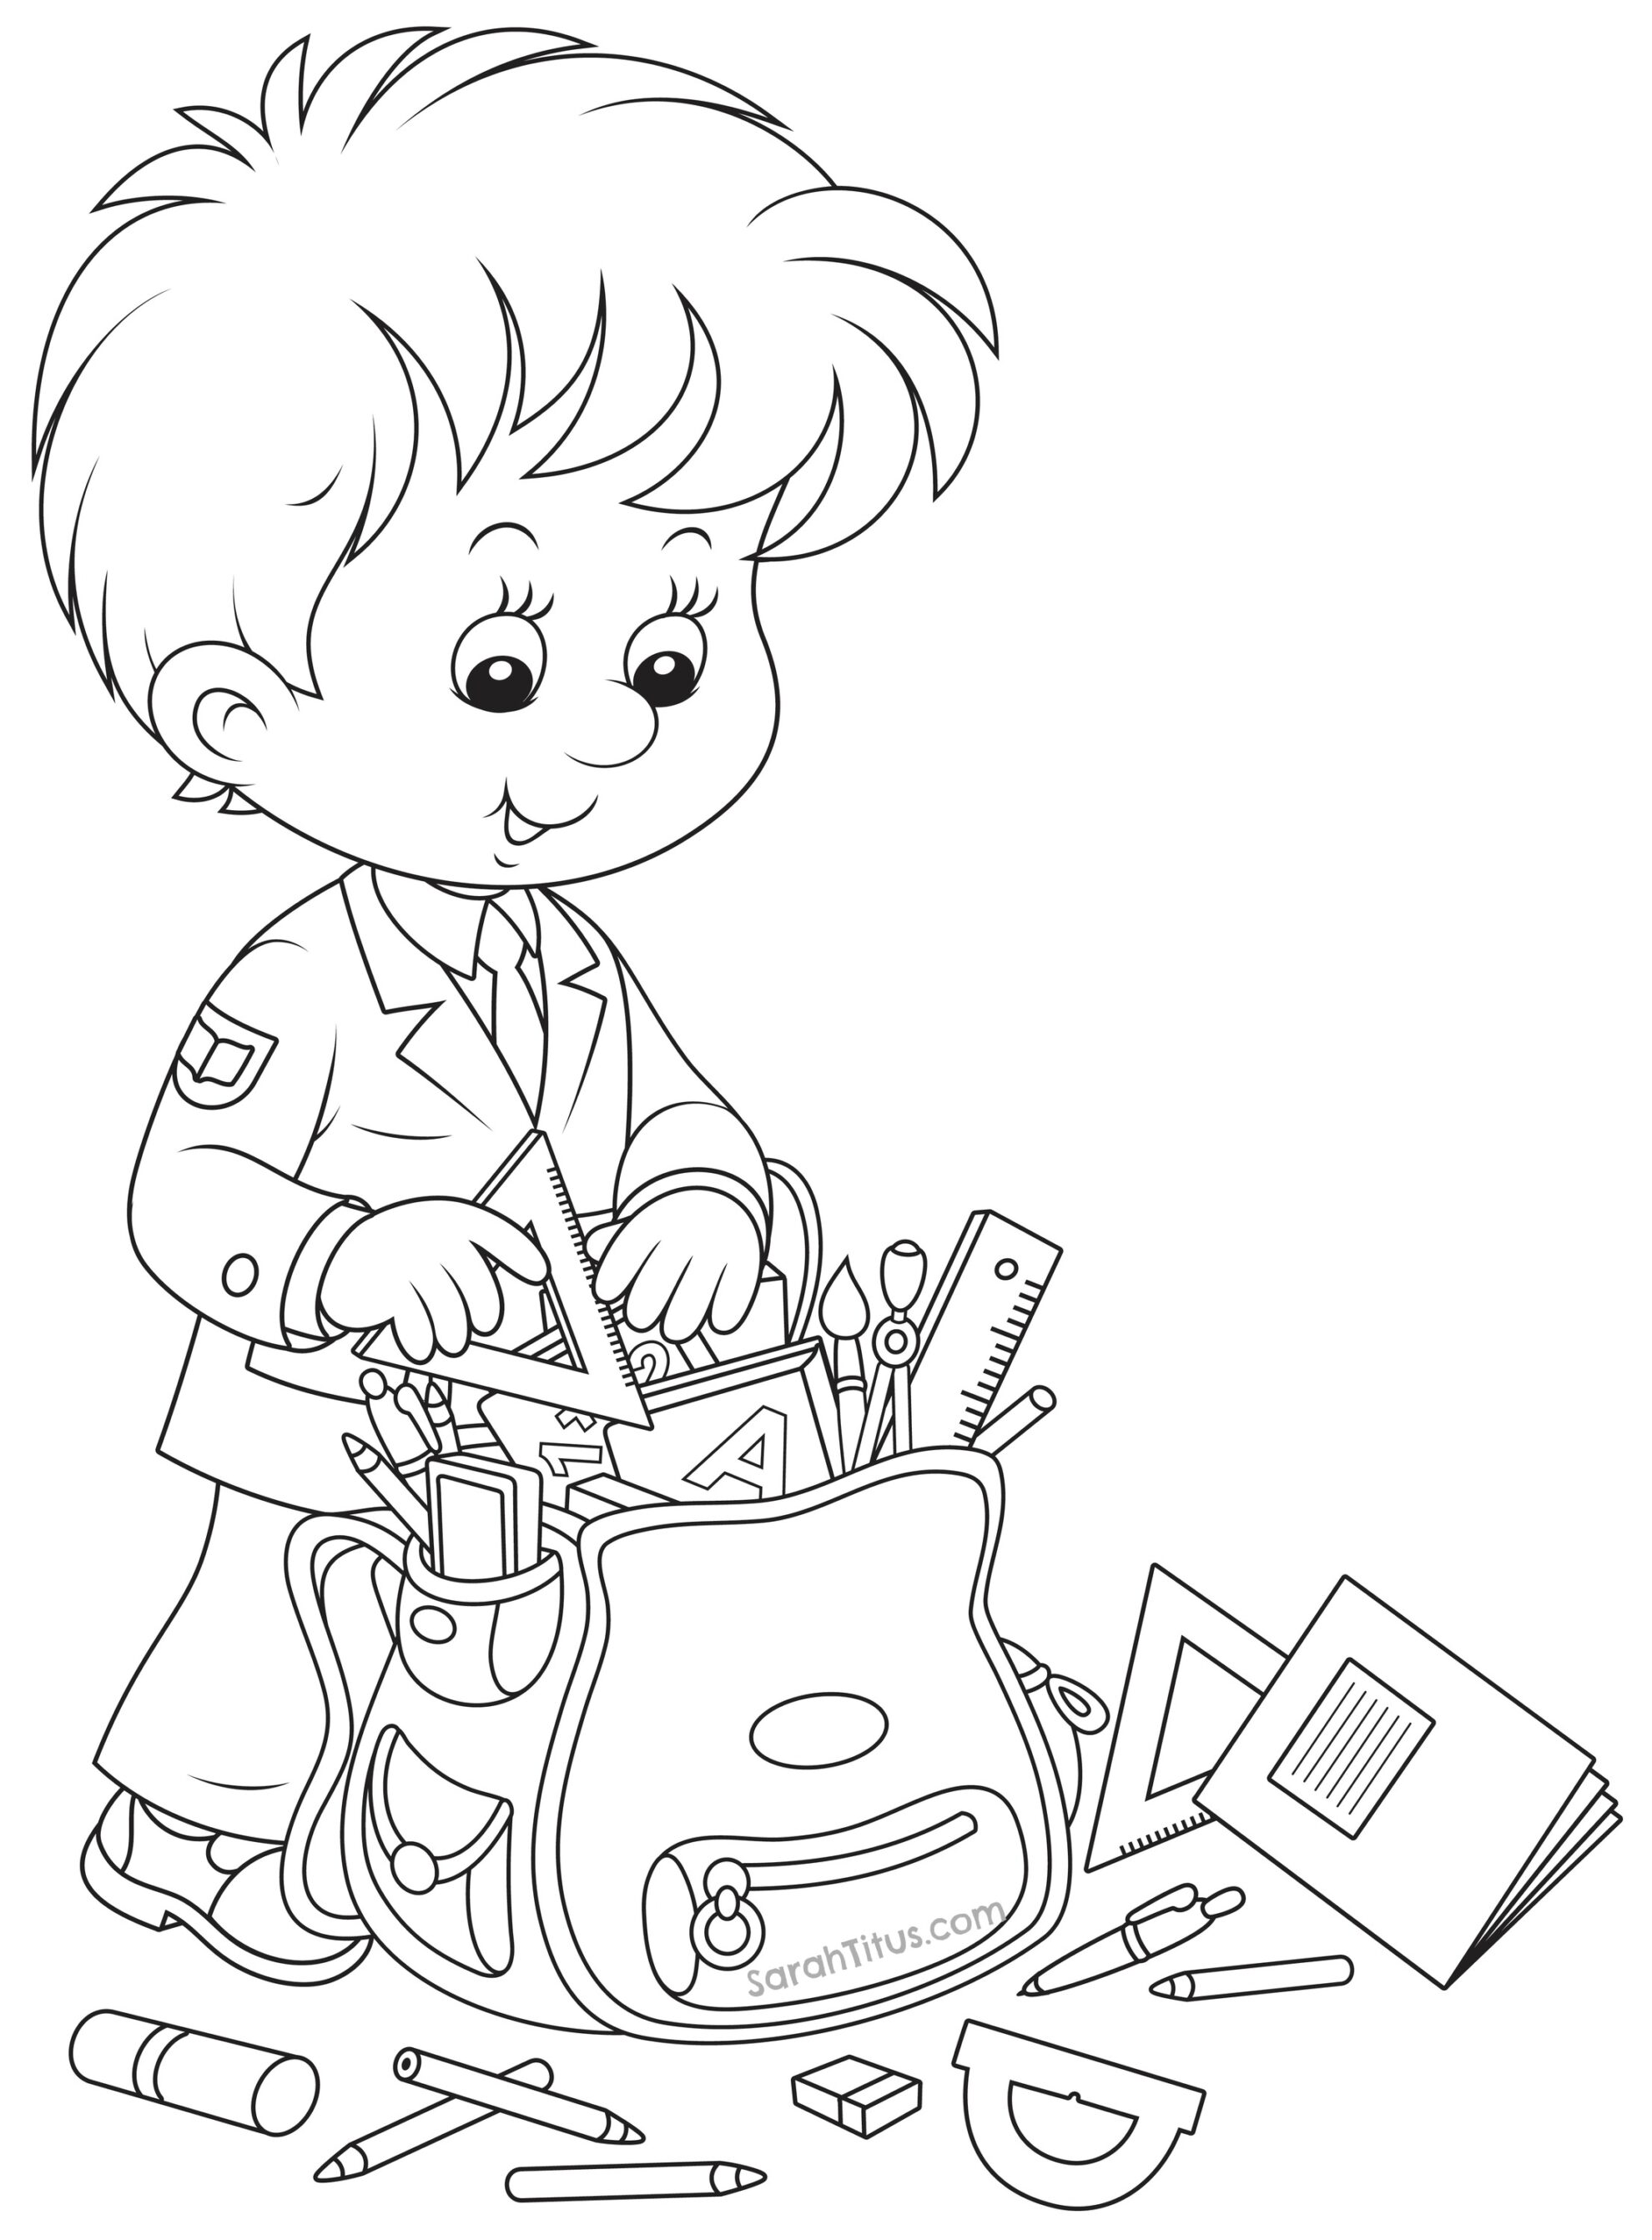 coloring school for kids school coloring pages to download and print for free school kids coloring for